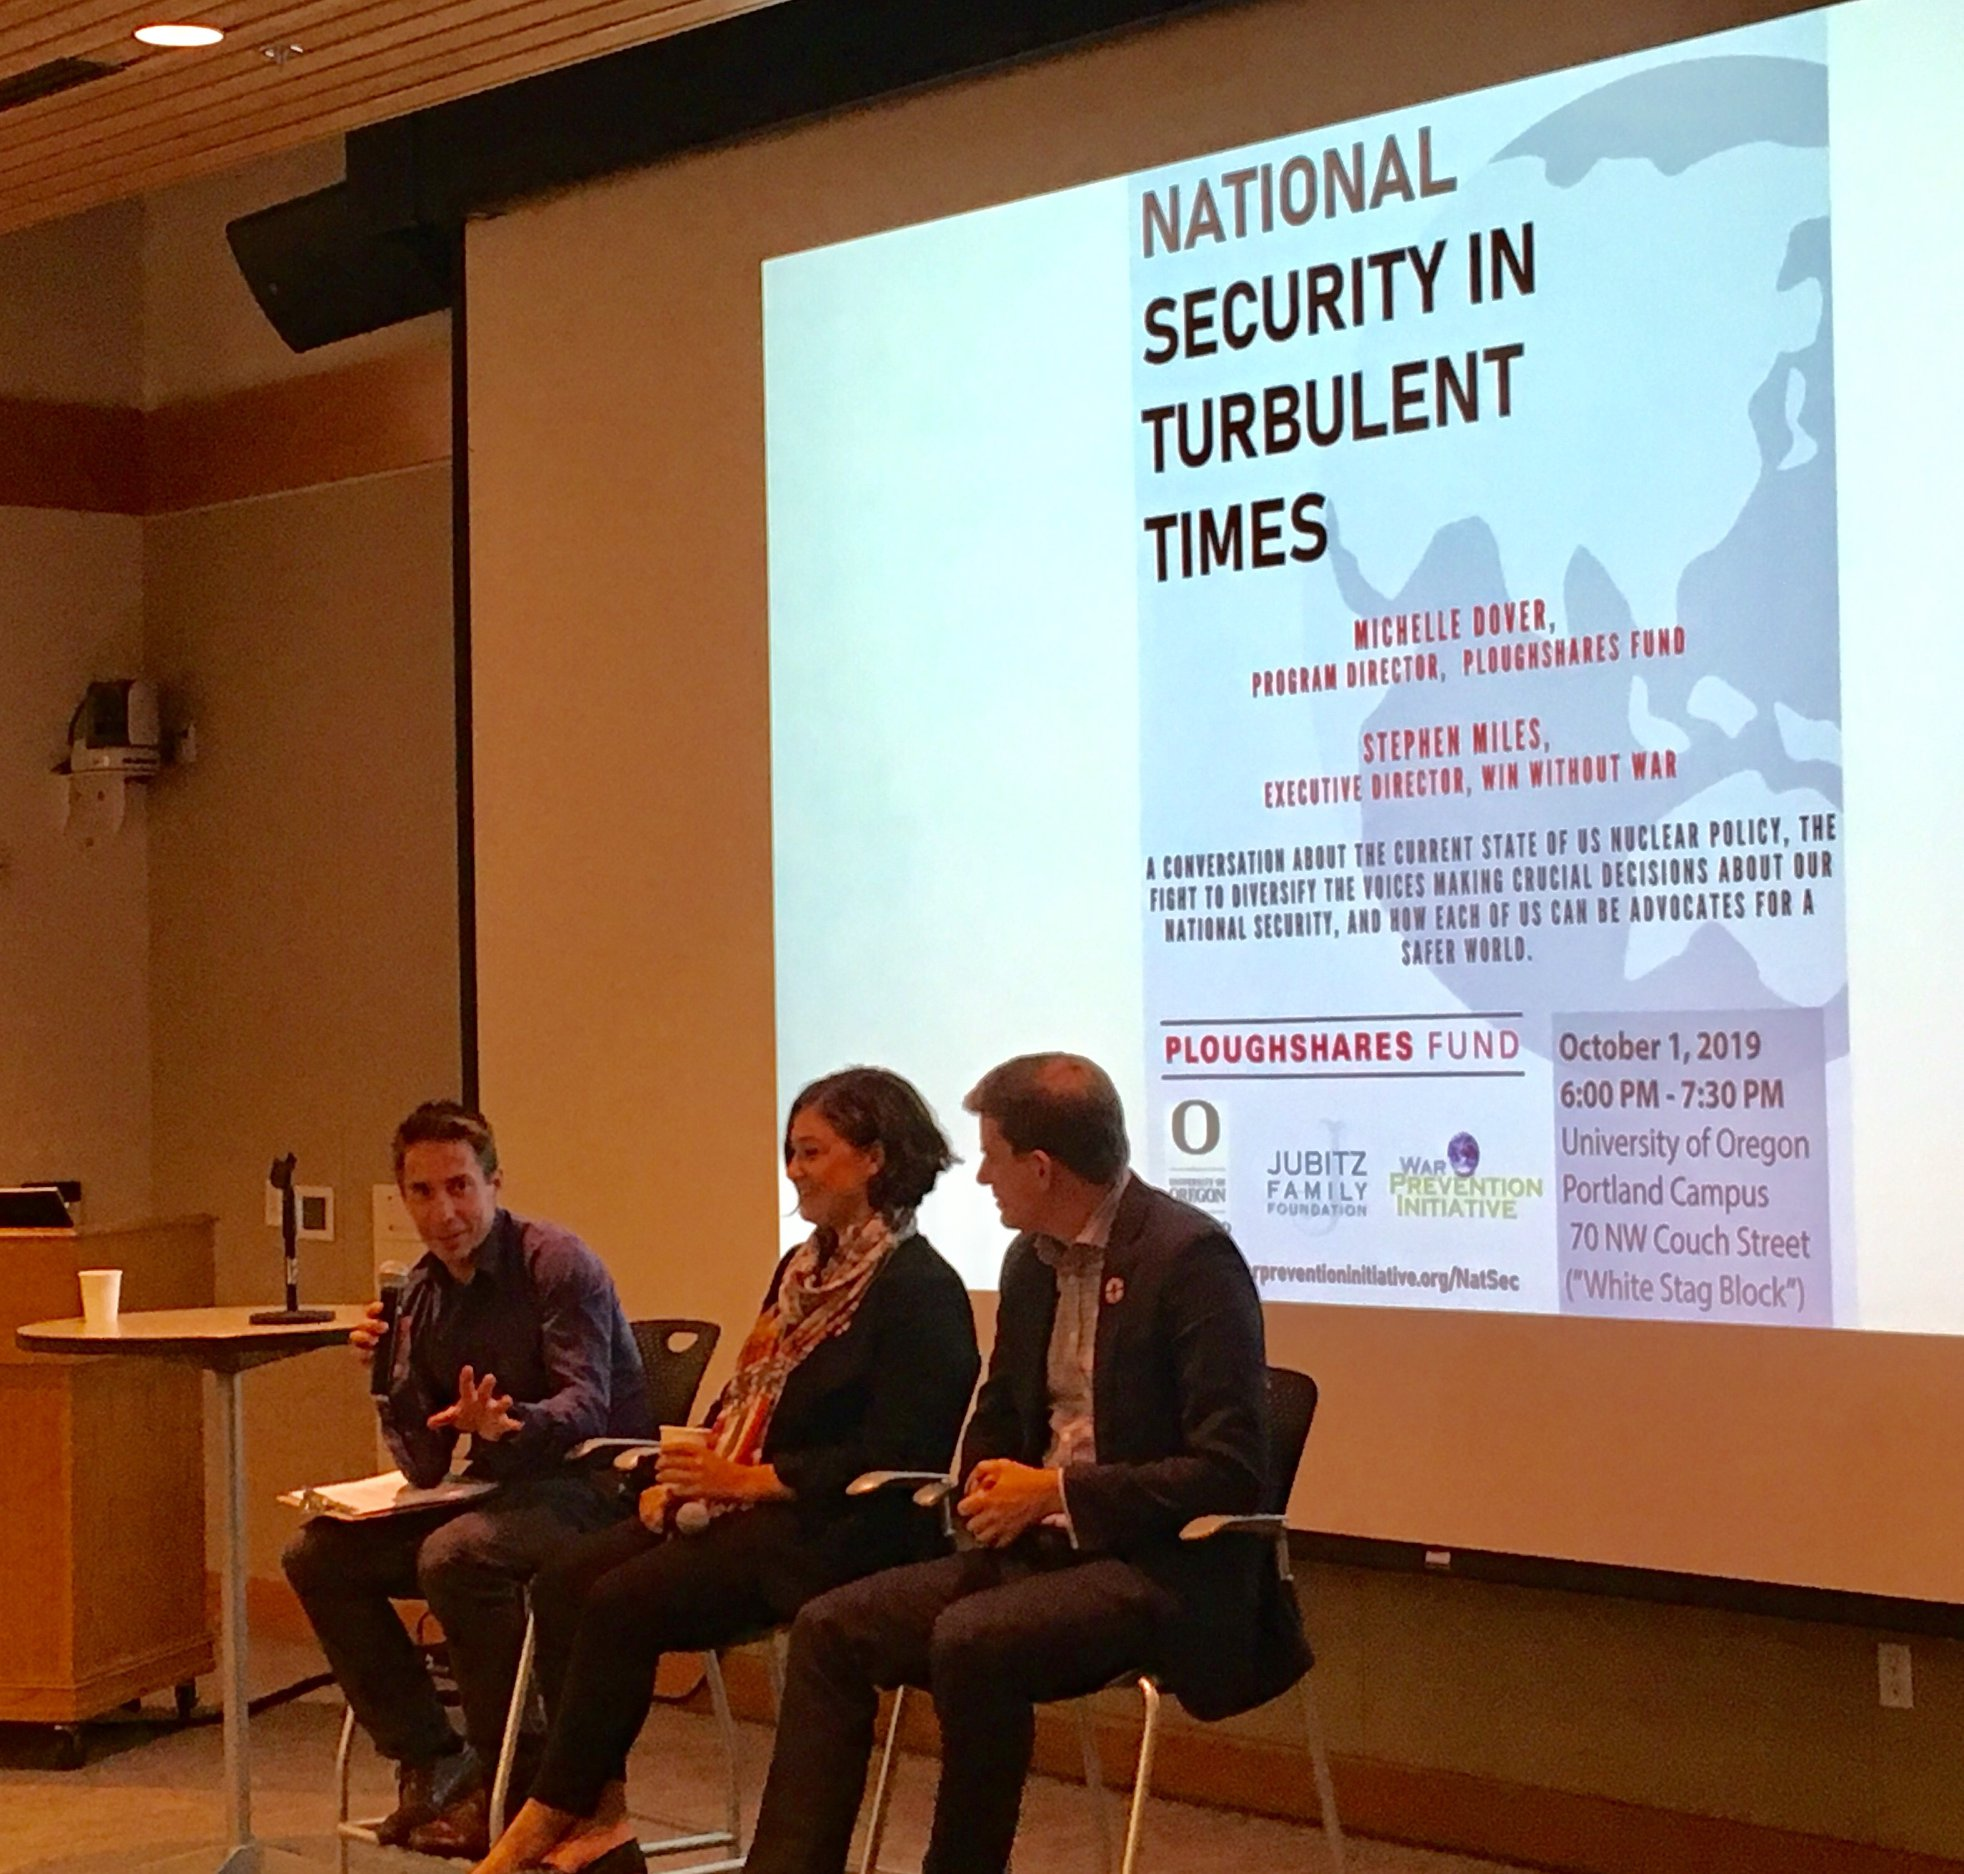 National Security in Turbulent Times